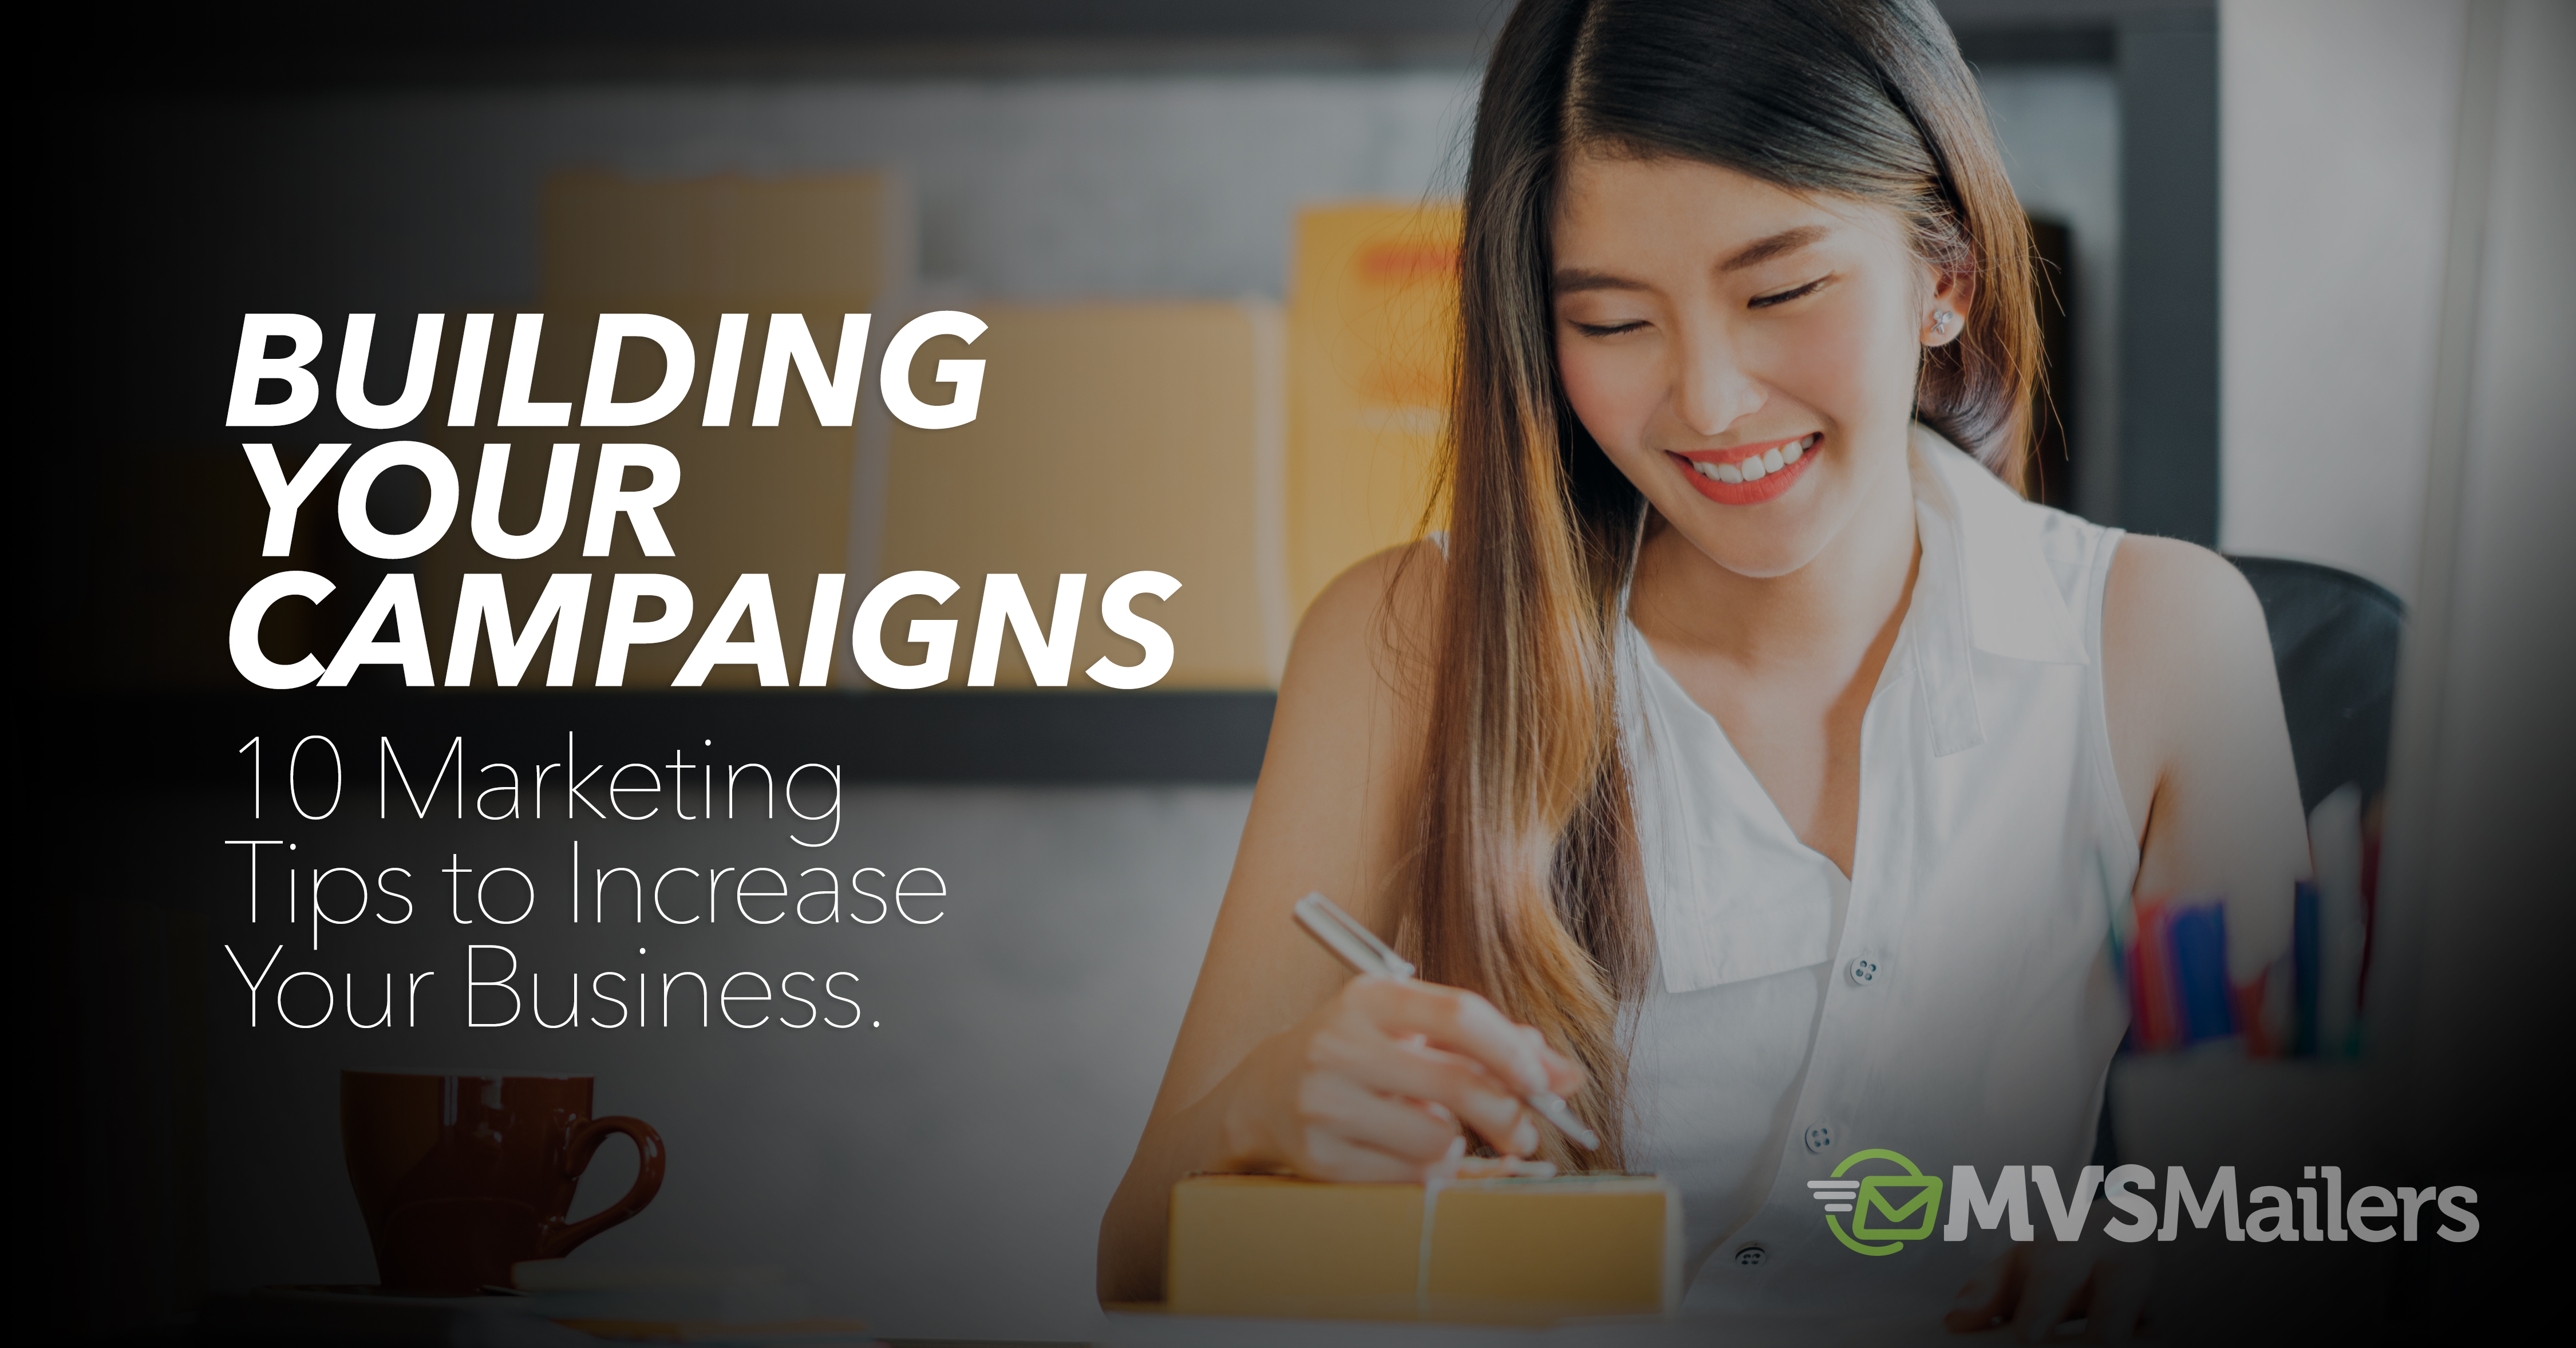 Building Your Campaigns